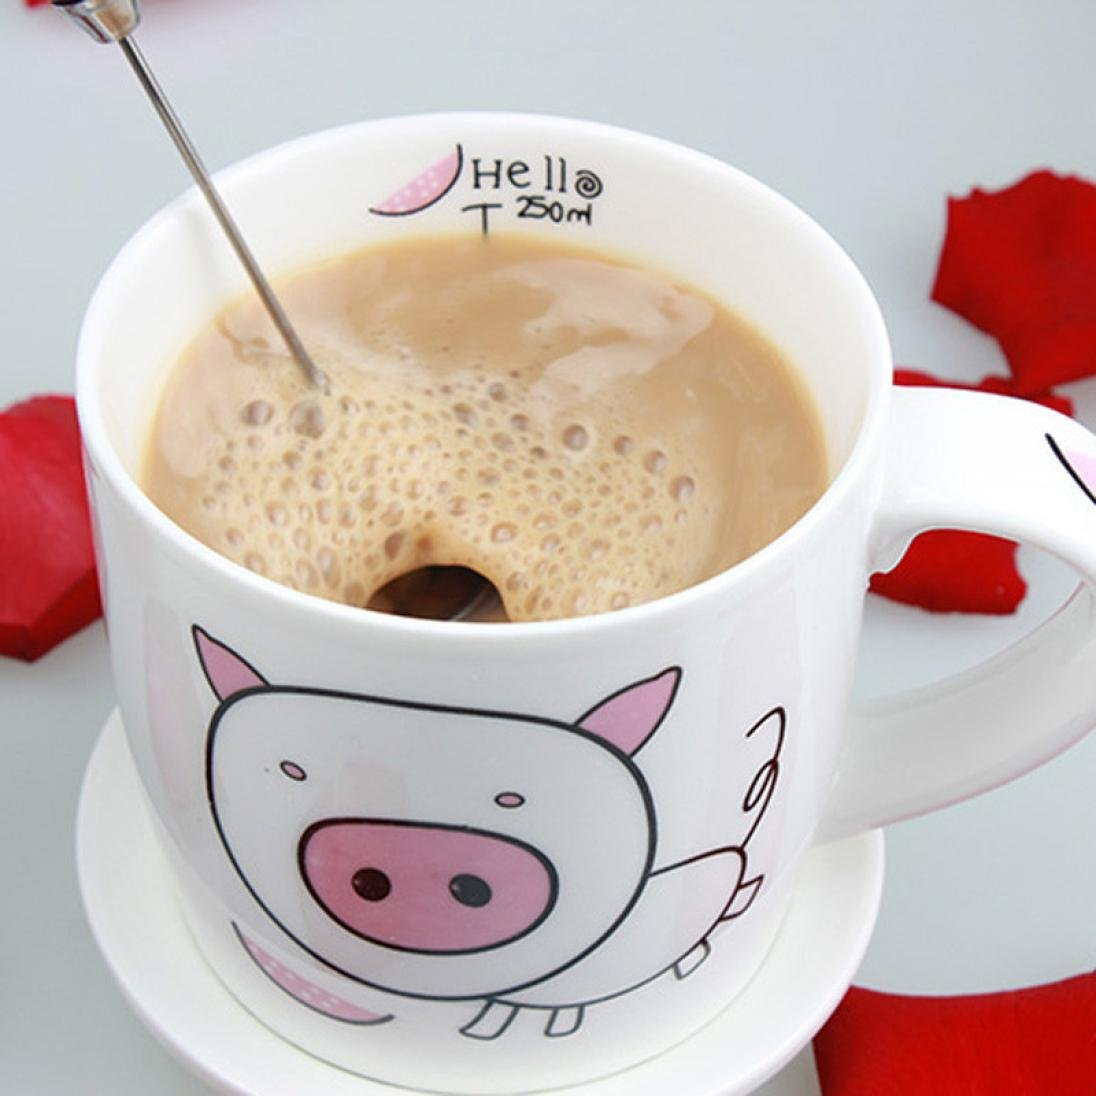 Iuhan Drinks Milk Frother Foamer Whisk Mixer Stirrer Egg Beater (Coffee) by Iuhan (Image #6)